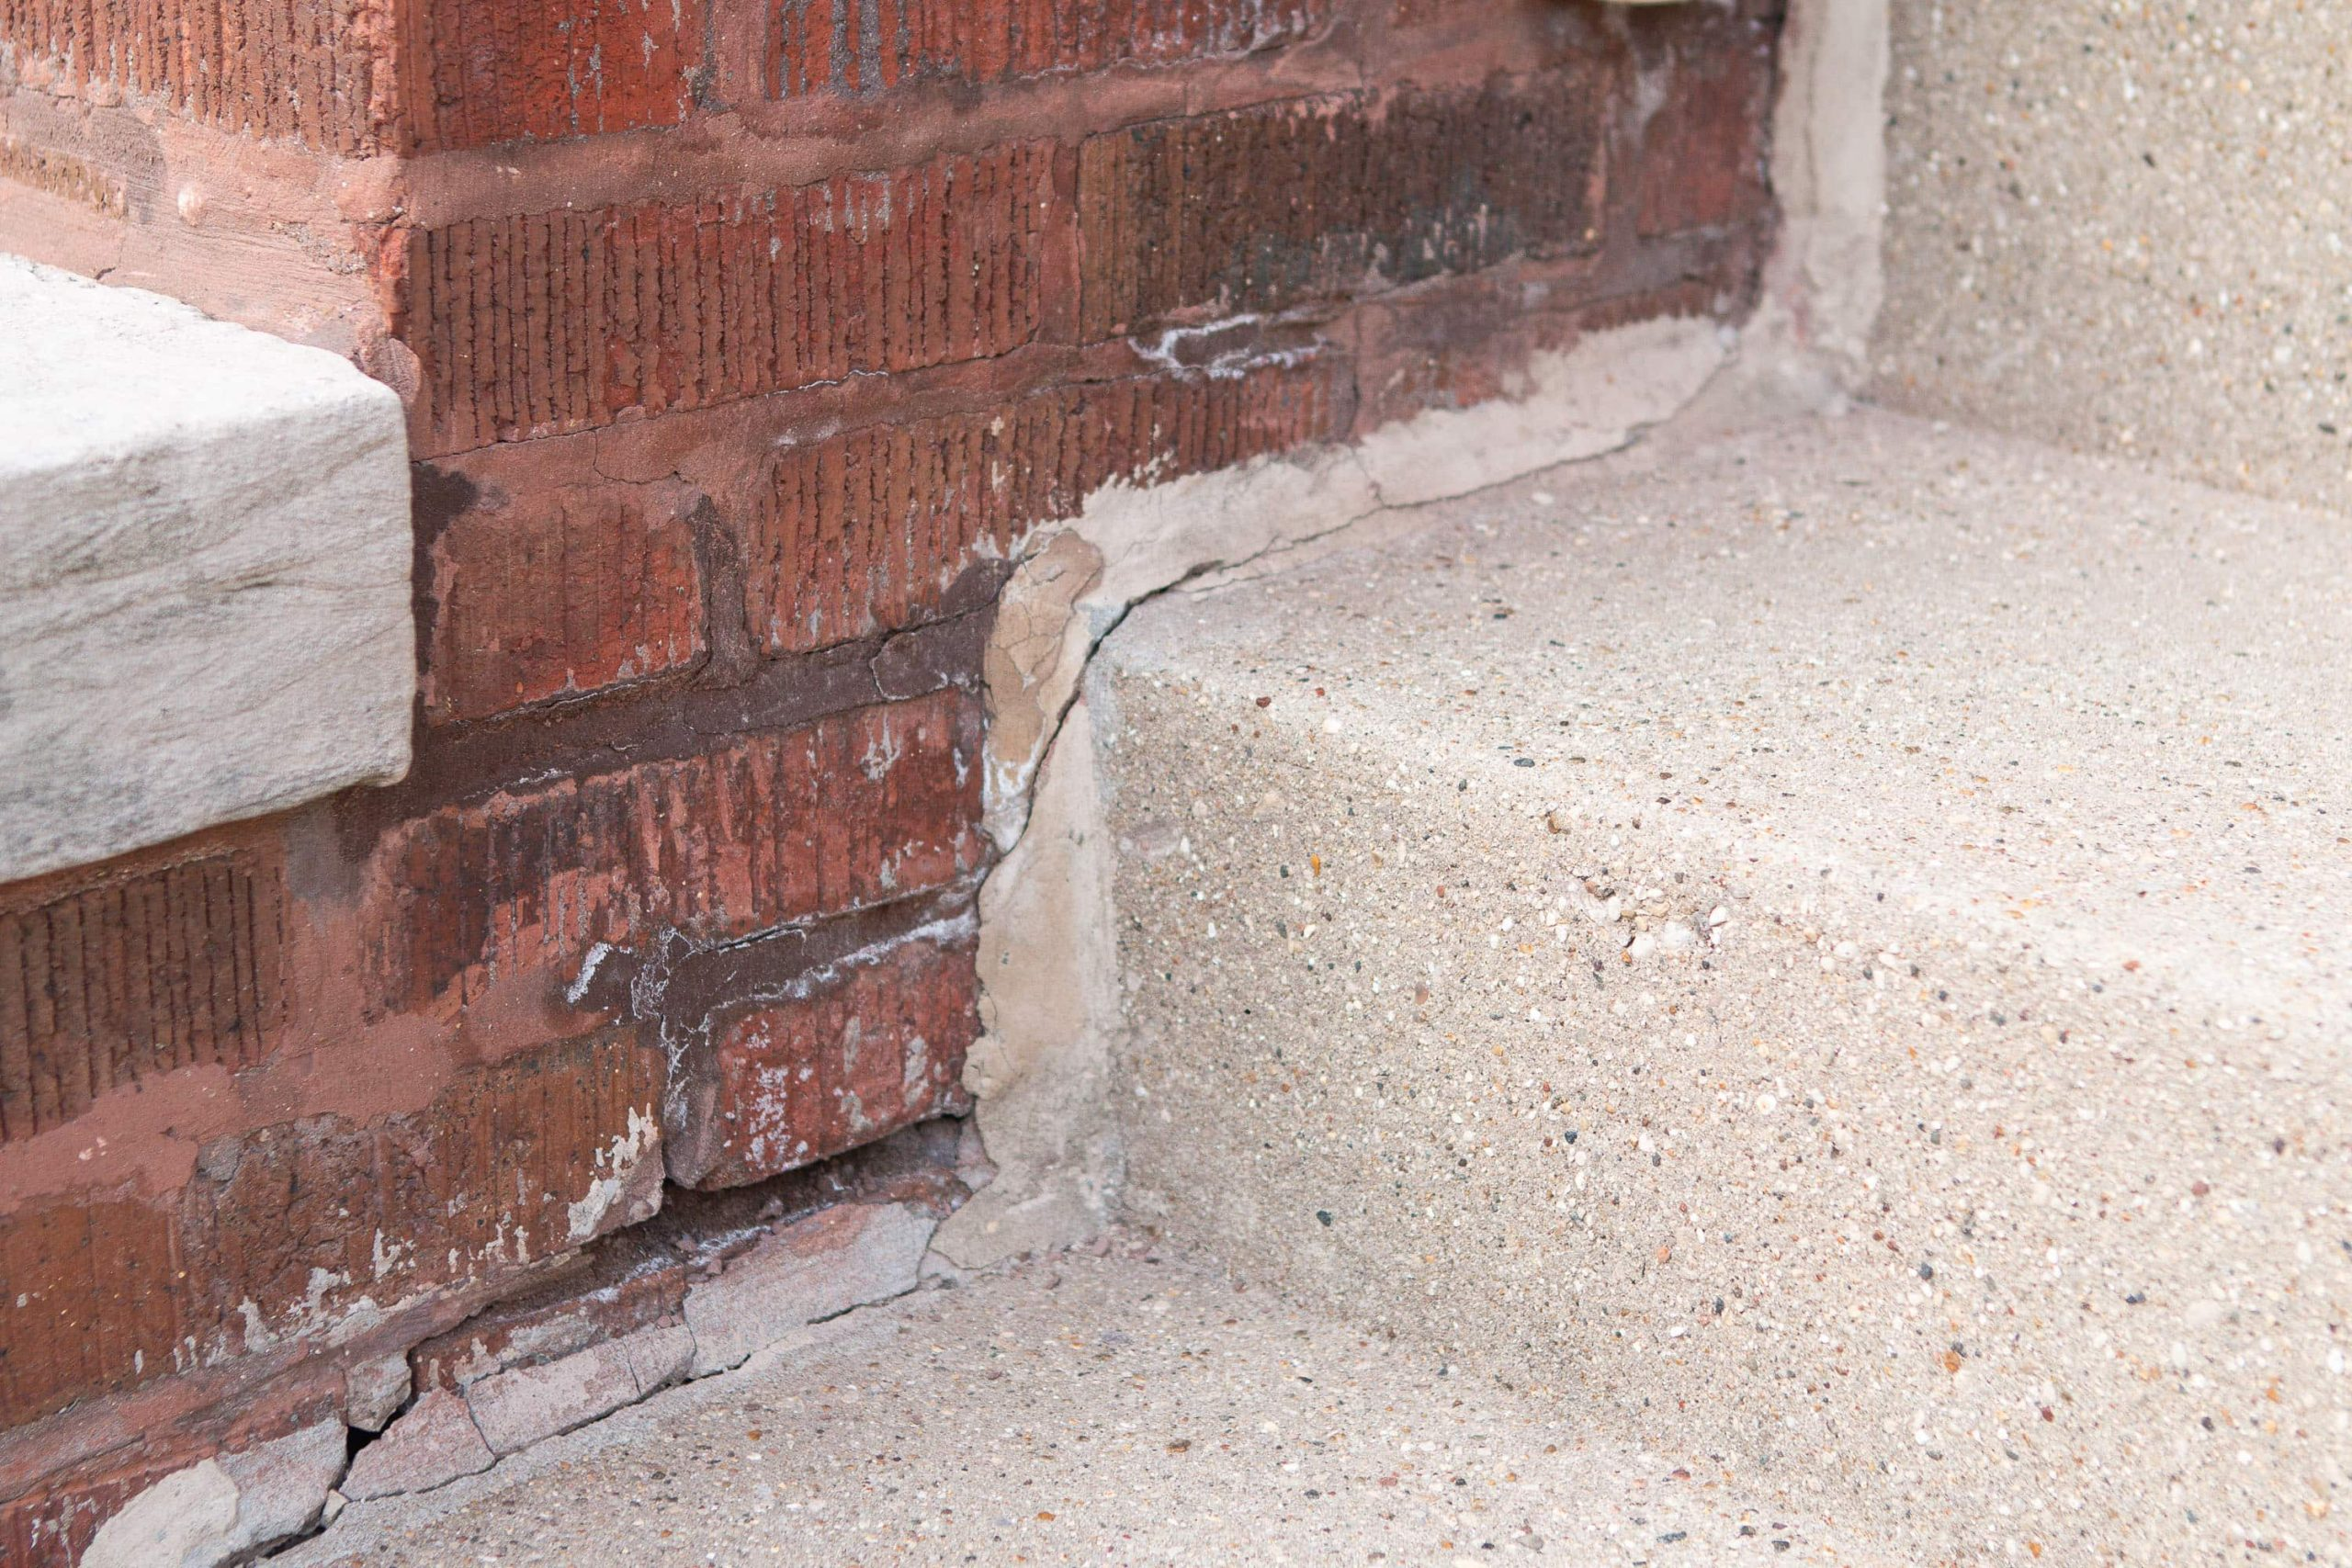 The crumbing brick and mortar on our front porch